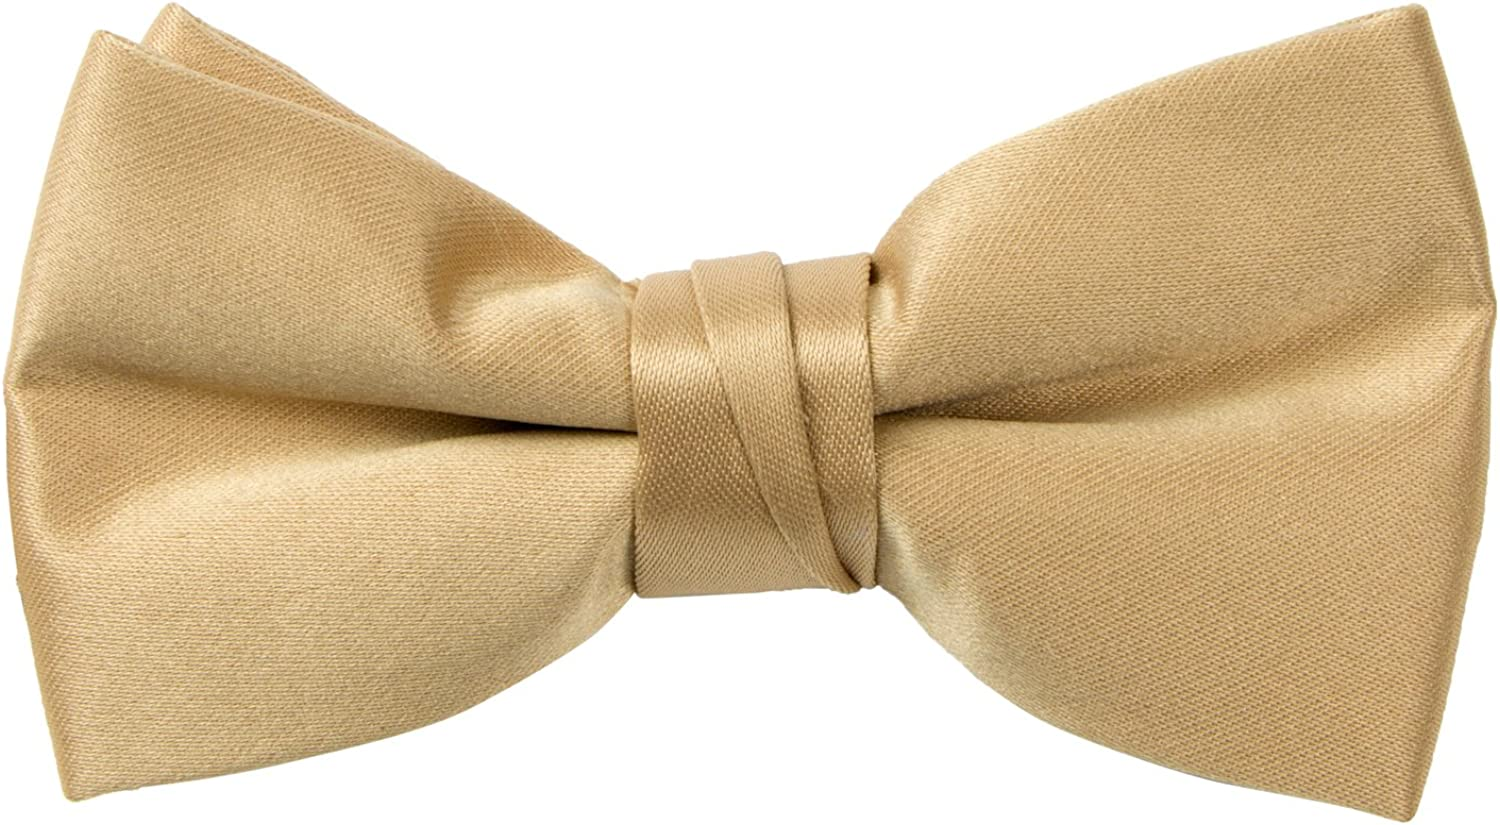 New KID/'S BOY/'S 100/% Polyester Pre-tied Bow tie only Purple formal wedding